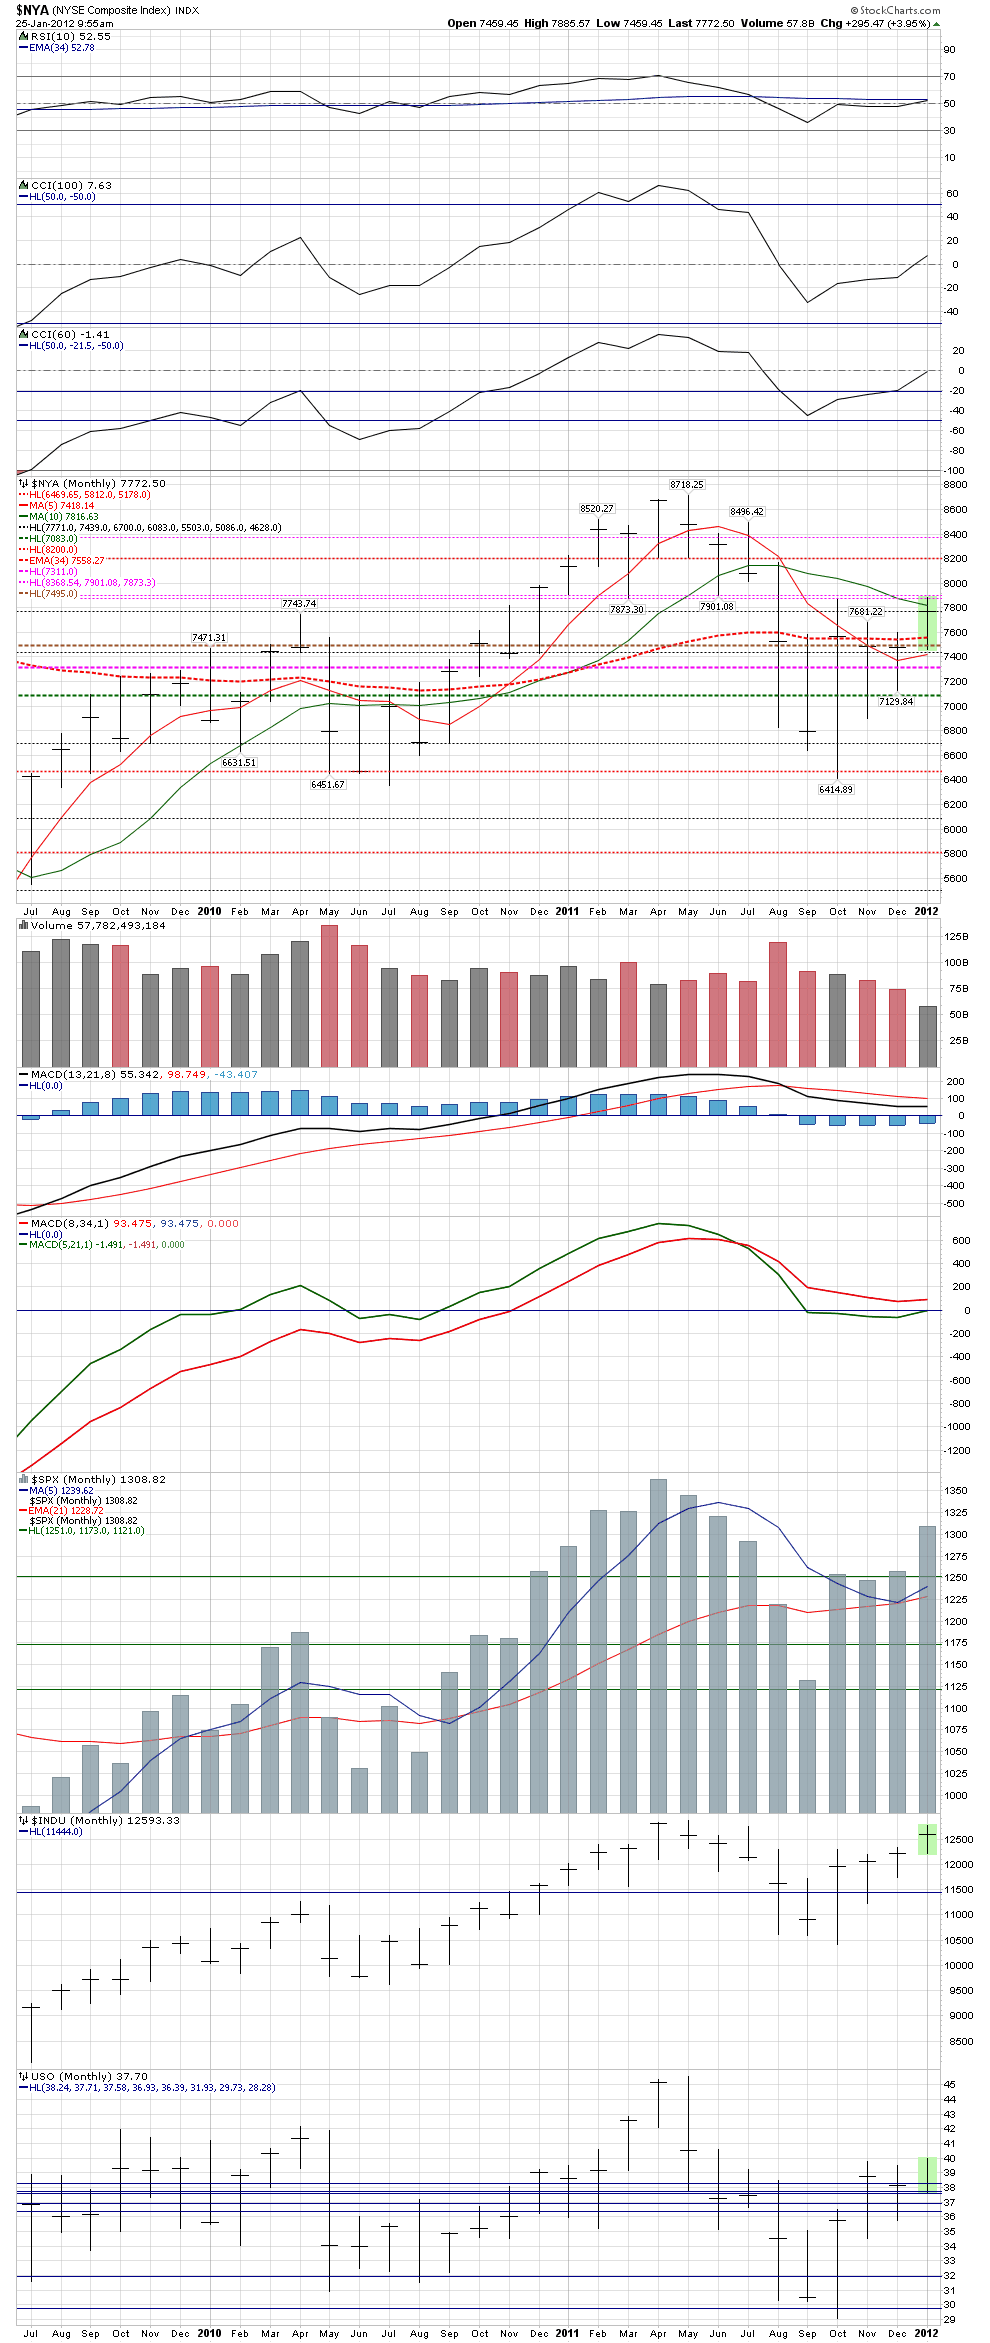 Name: NYA_monthly_price_bars_-_9.55_am_January_25,_2012.png, Views: 133, Size: 73.02 KB